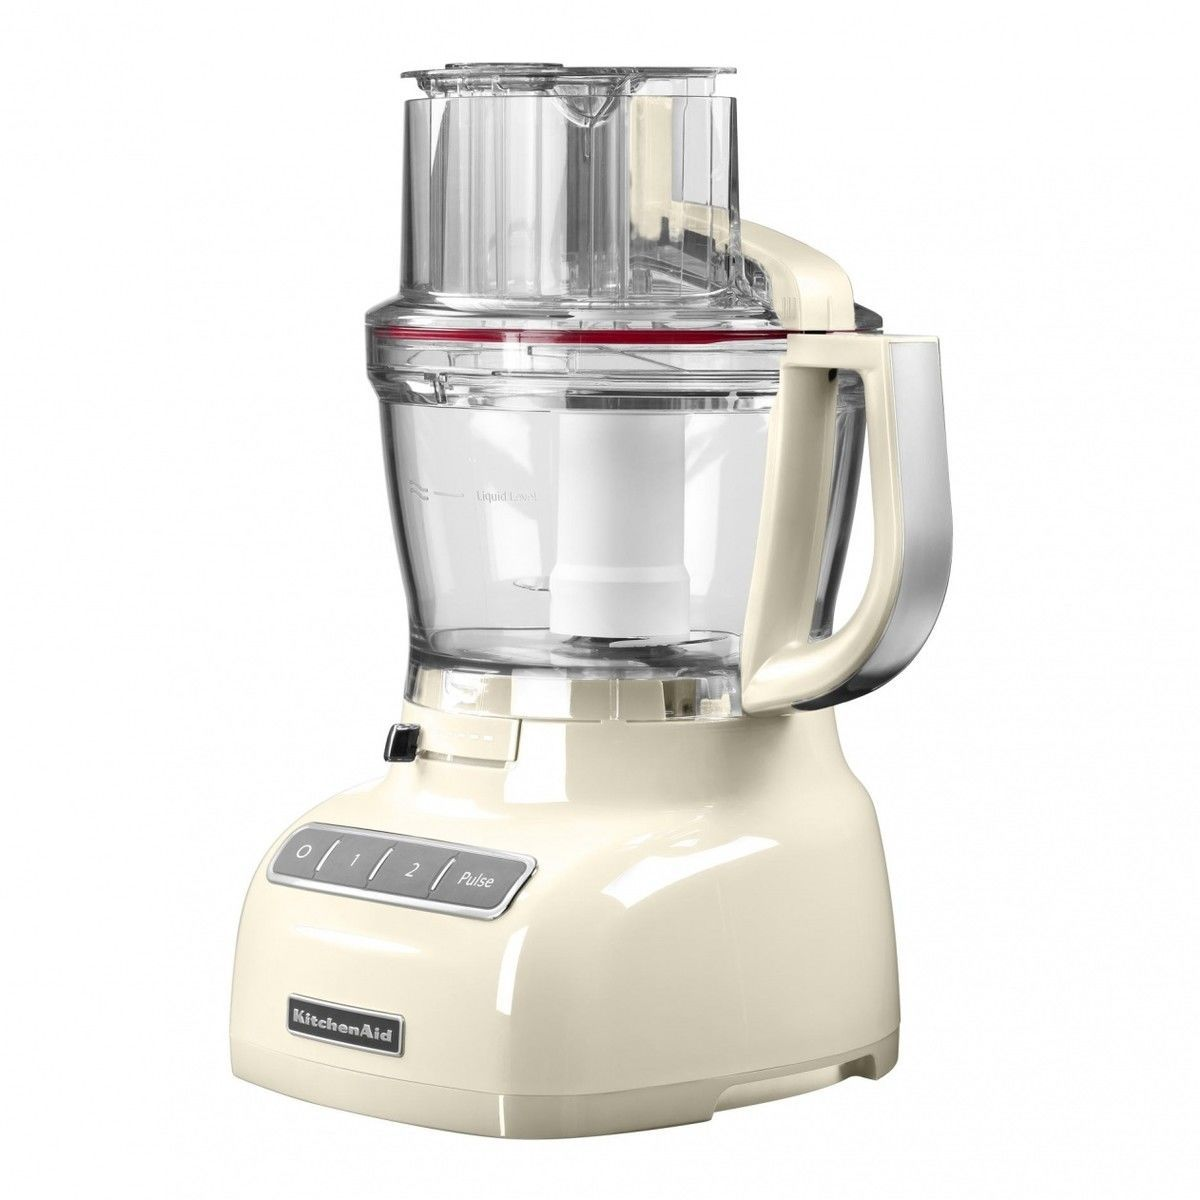 Kitchenaid artisan robot m nager 5kfp1335 kitchenaid for Appareil menager cuisine